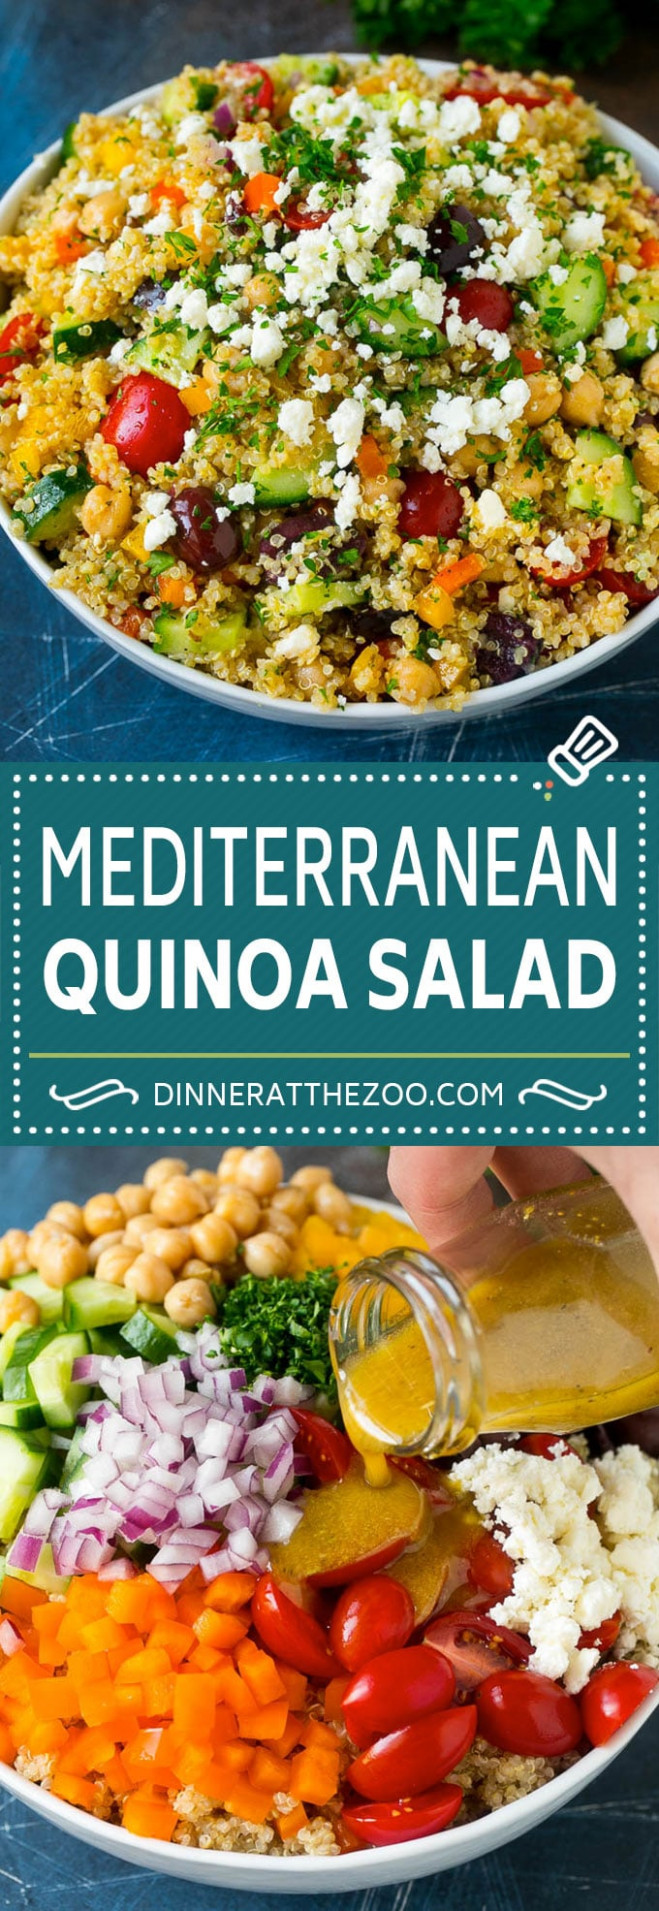 Quinoa Salad with Veggies - Dinner at the Zoo - quinoa recipes dinner